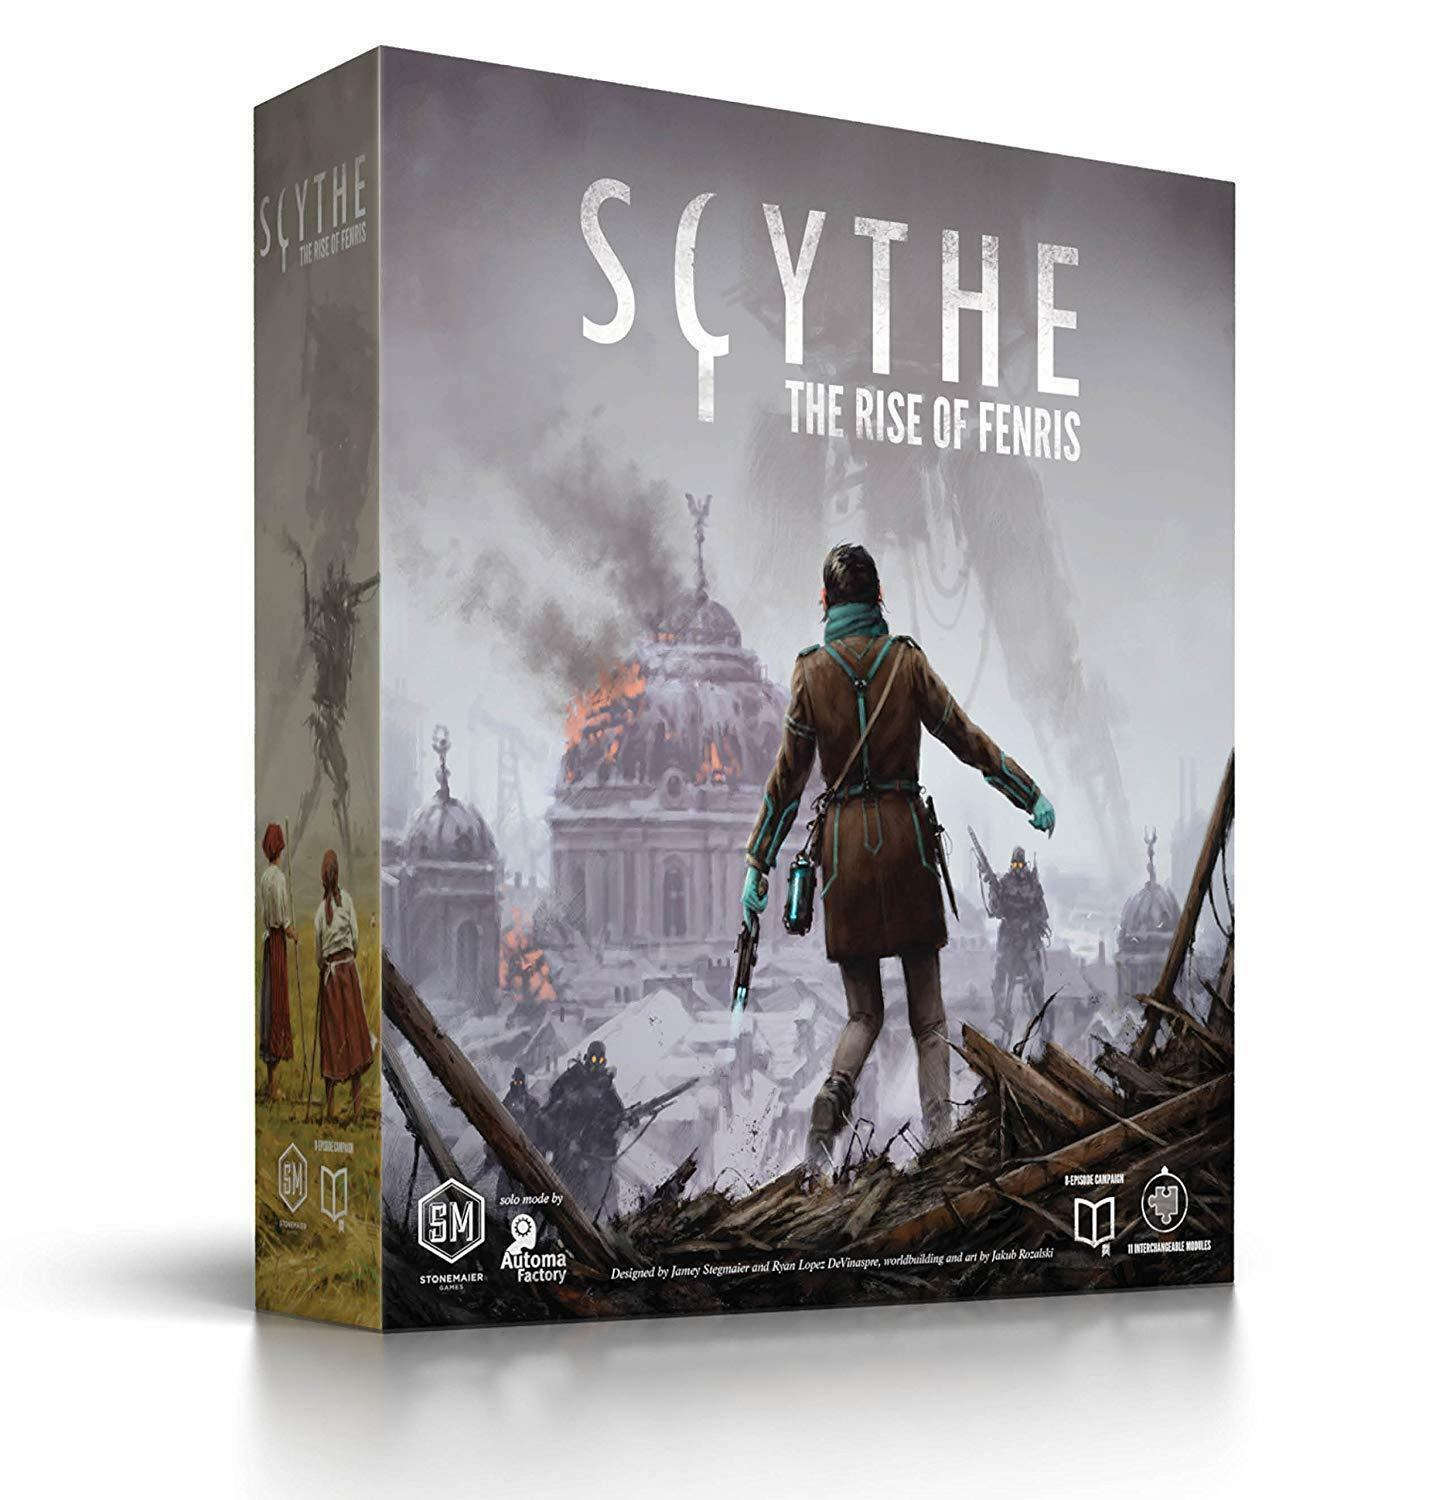 Scythe  The Rise of Fenris expansion expansion expansion Game - Stonemaier Games  - NEW SEALED 6b91d6